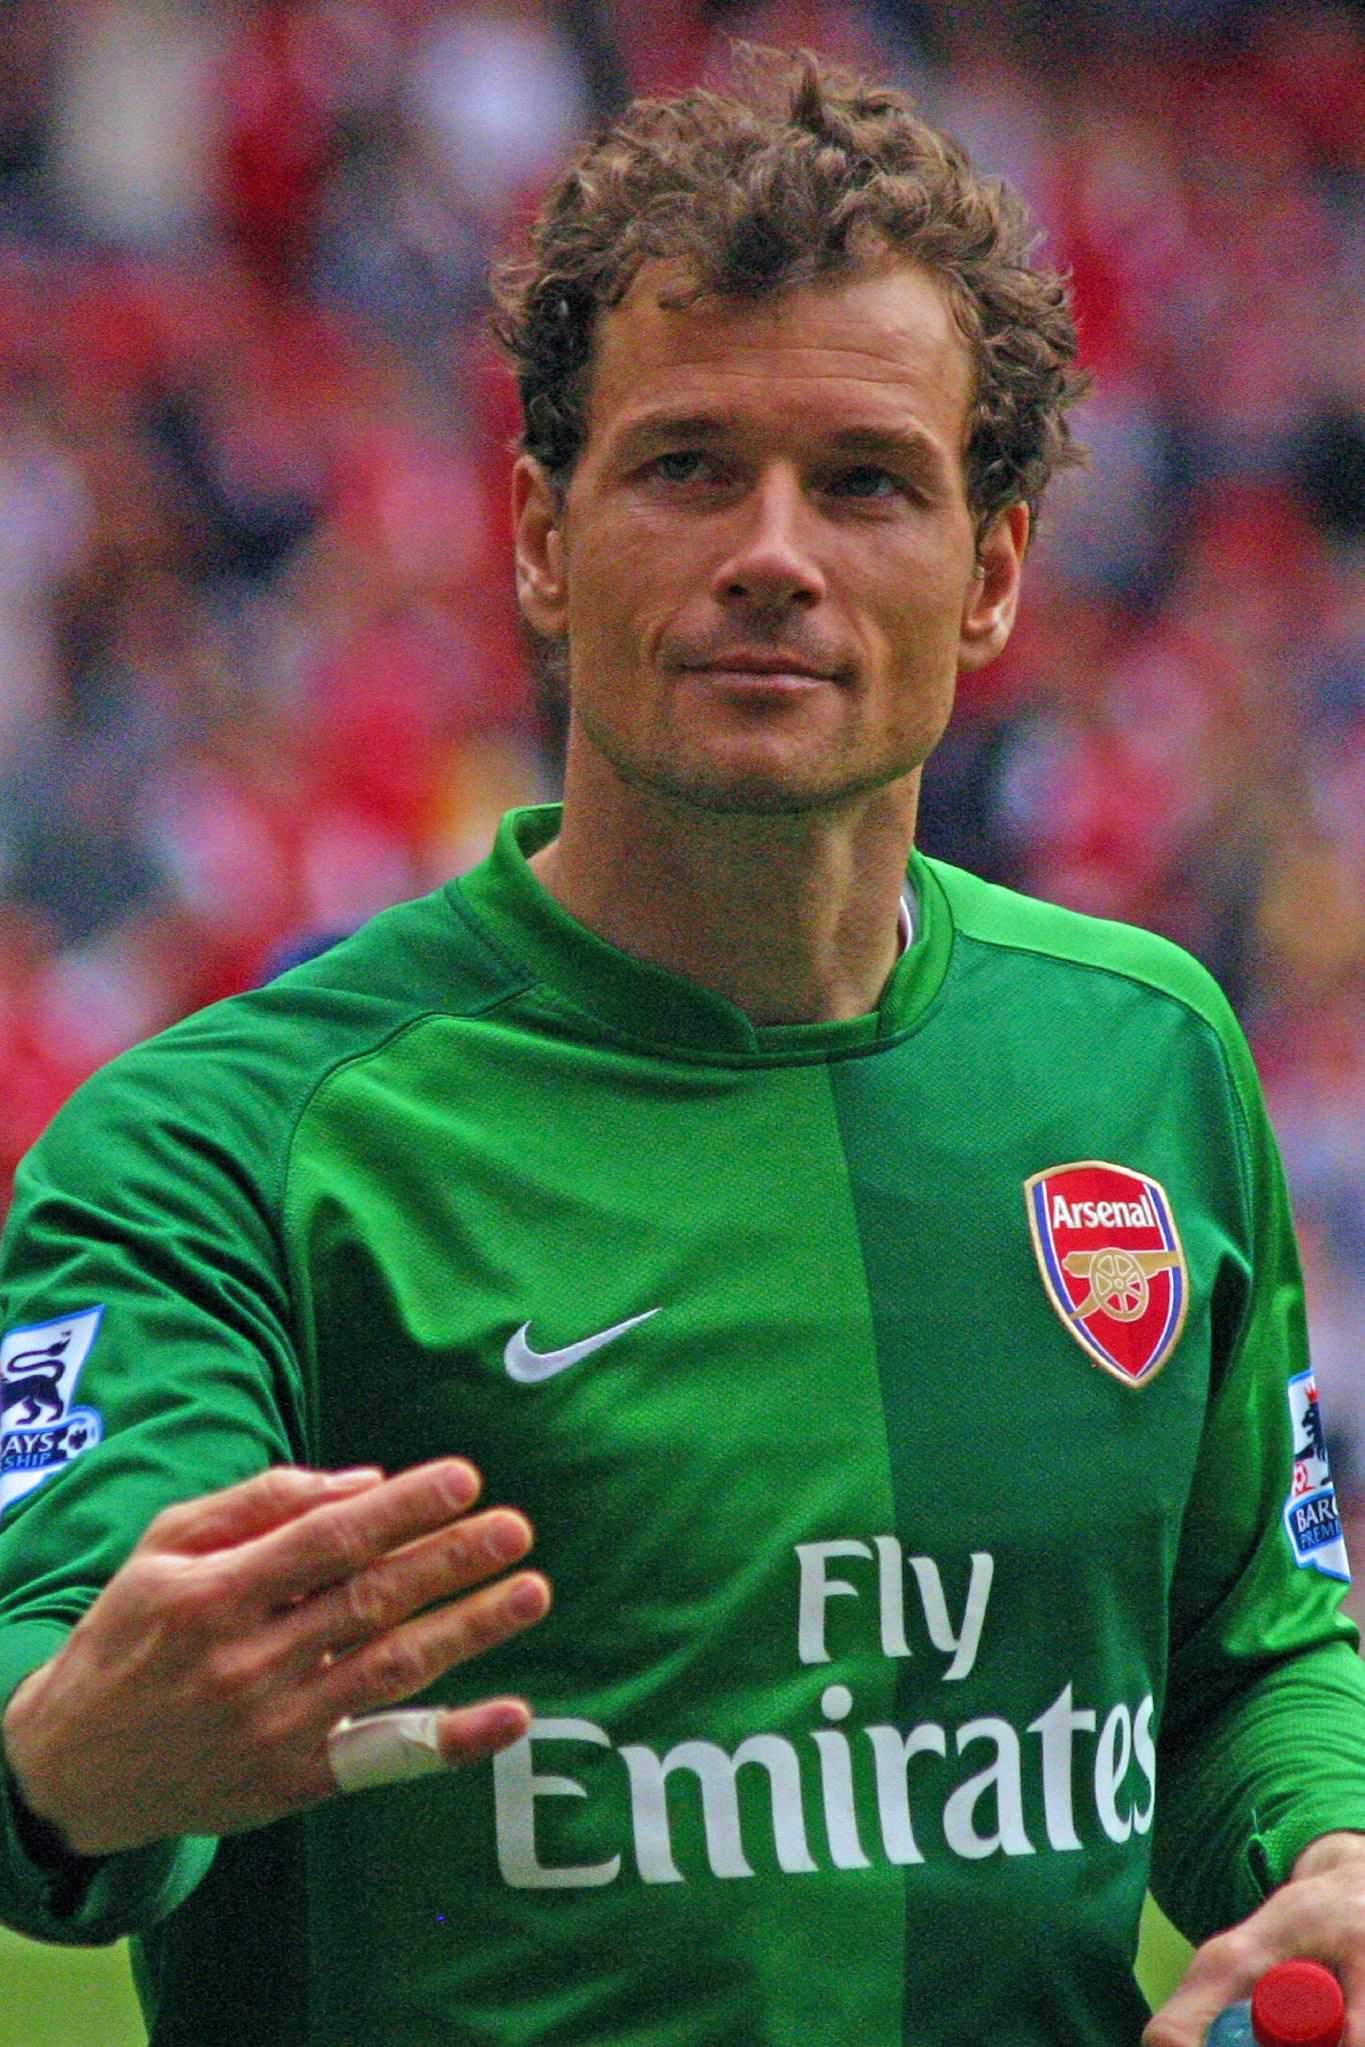 The 50-year old son of father Hans-Dieter  and mother(?) Jens Lehmann in 2019 photo. Jens Lehmann earned a  million dollar salary - leaving the net worth at 6 million in 2019